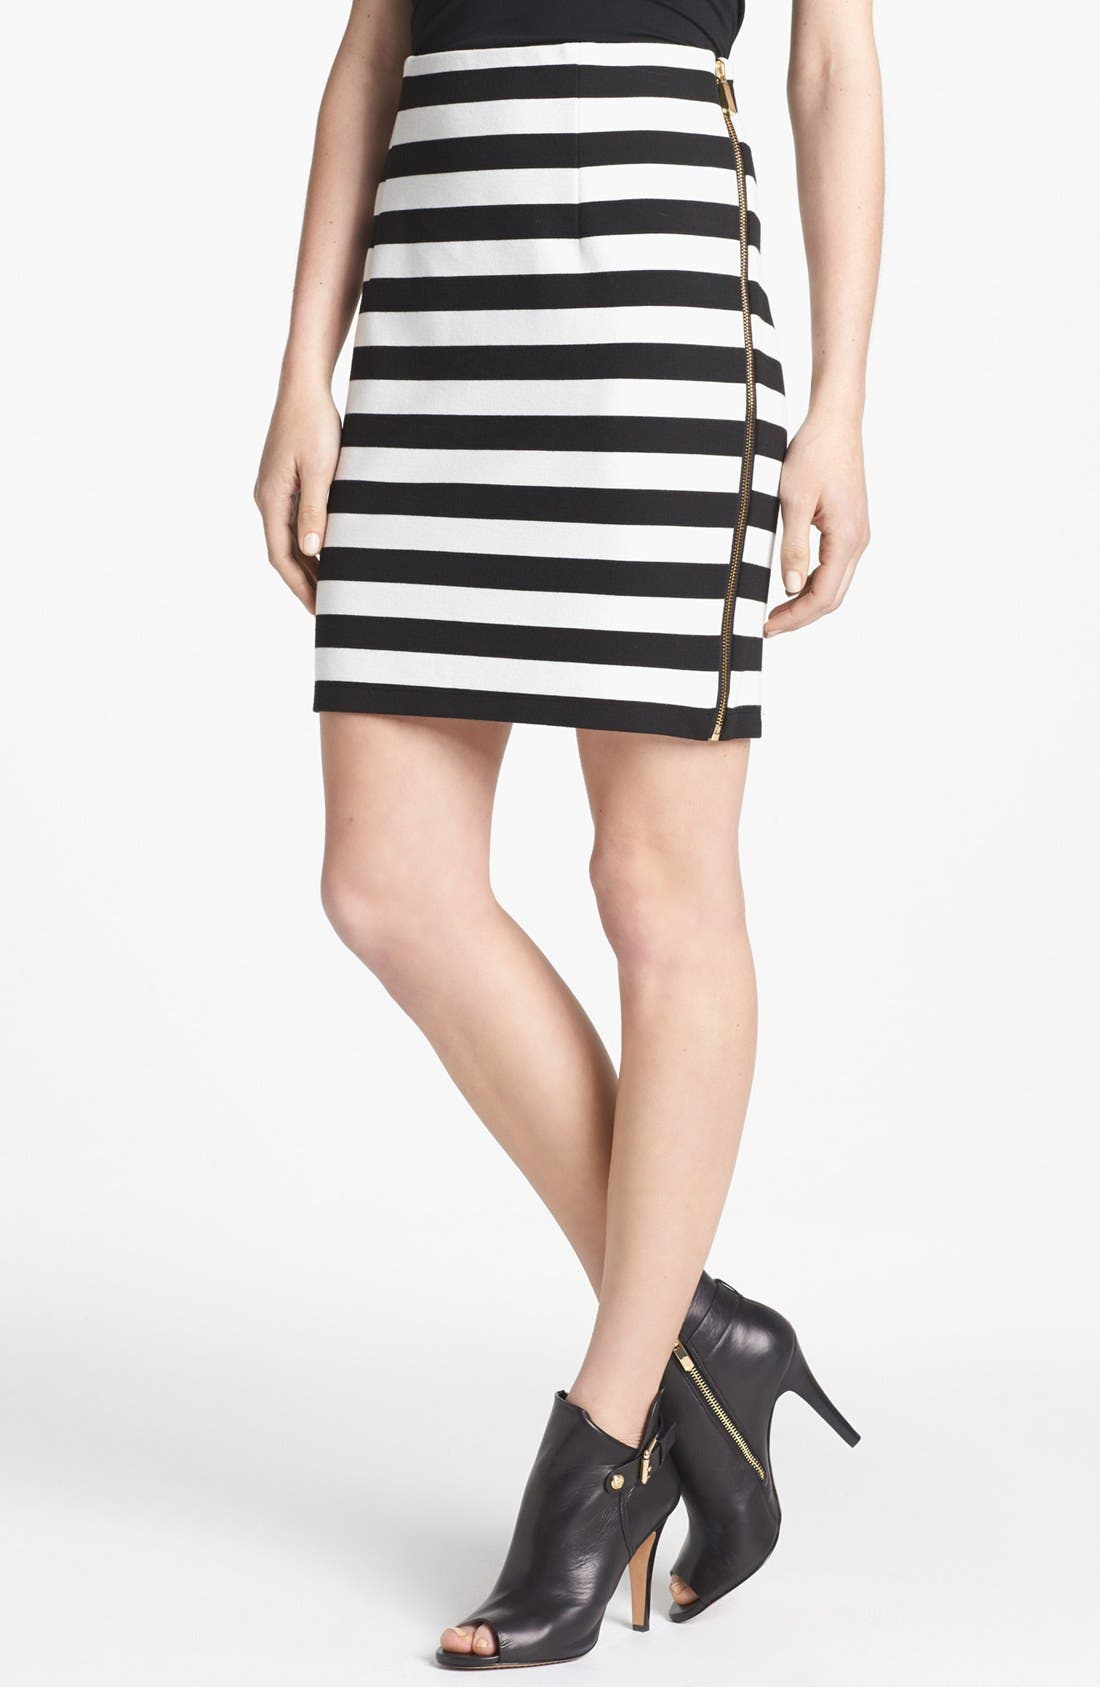 Alternate Image 1 Selected - Vince Camuto Side Zip Pencil Skirt